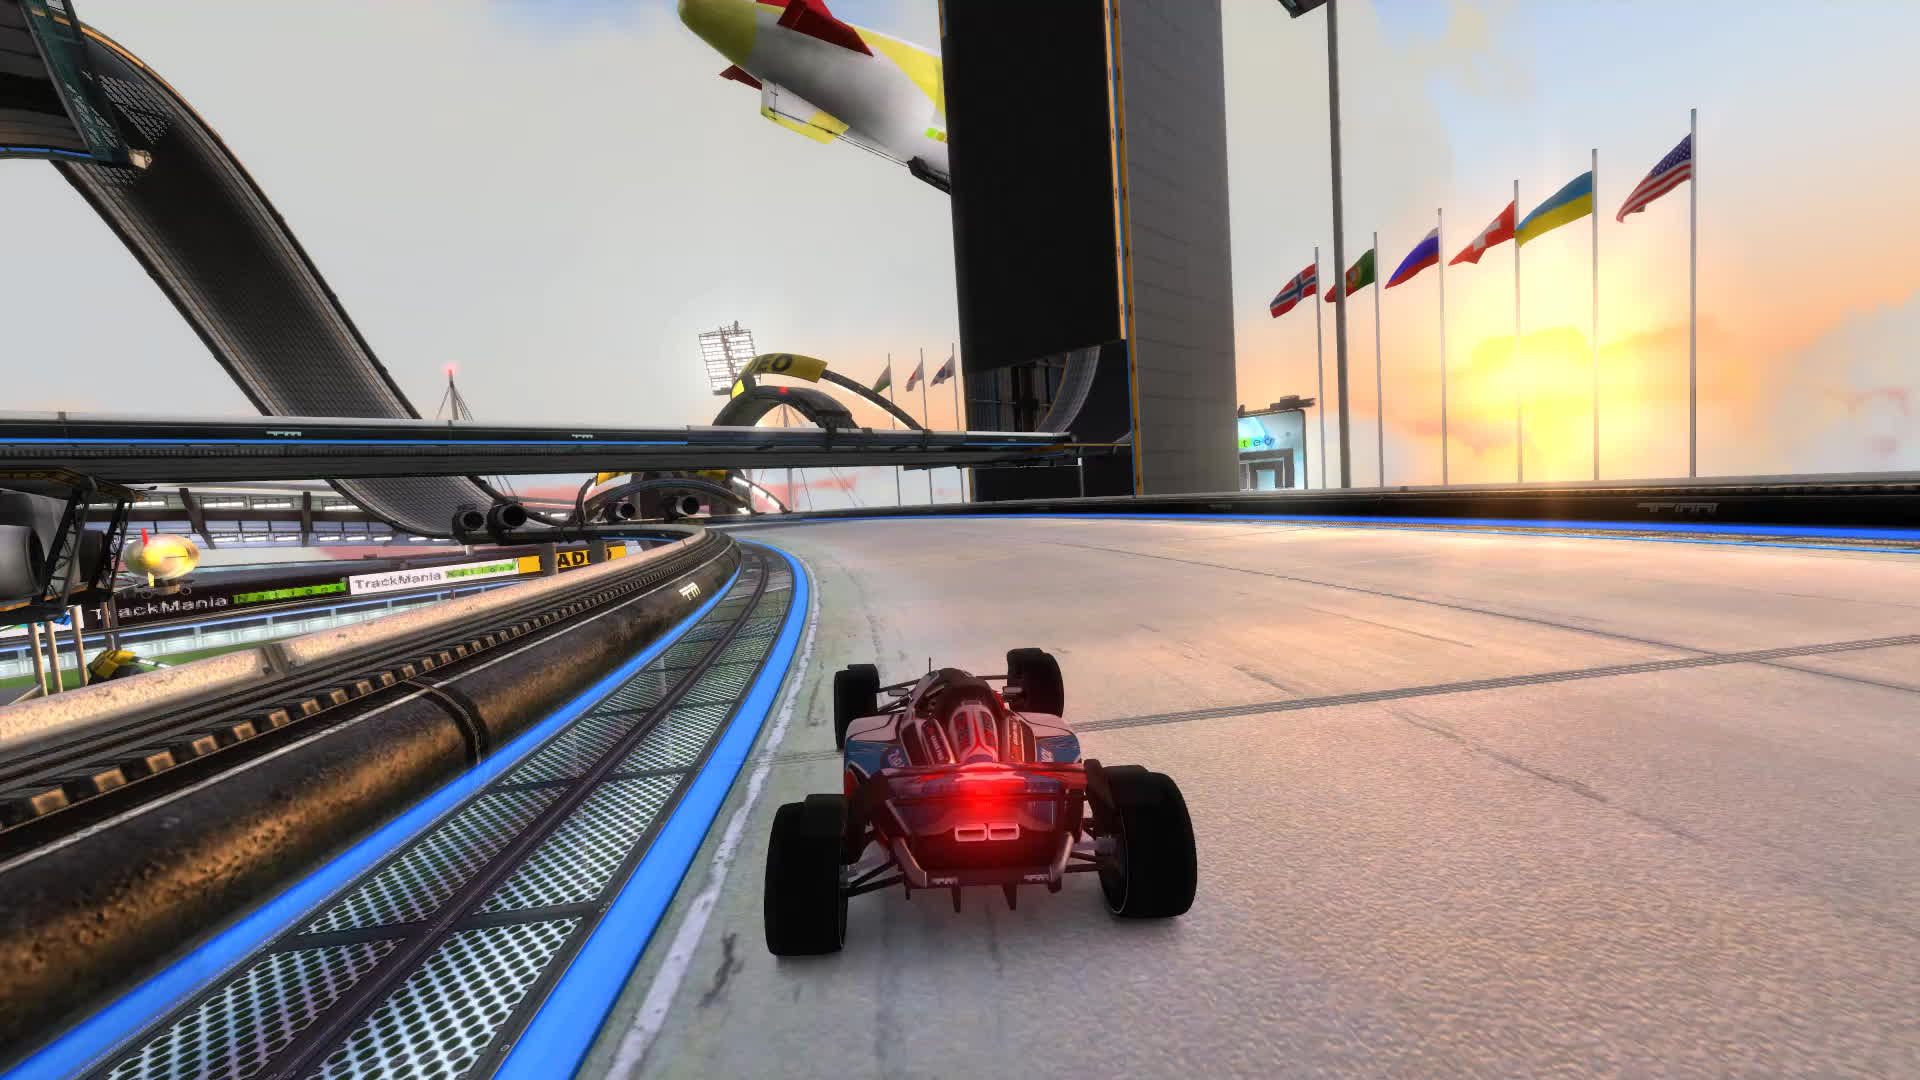 Trackmania  Forever 09.14.2017 - 15.16.48.07 GIFs